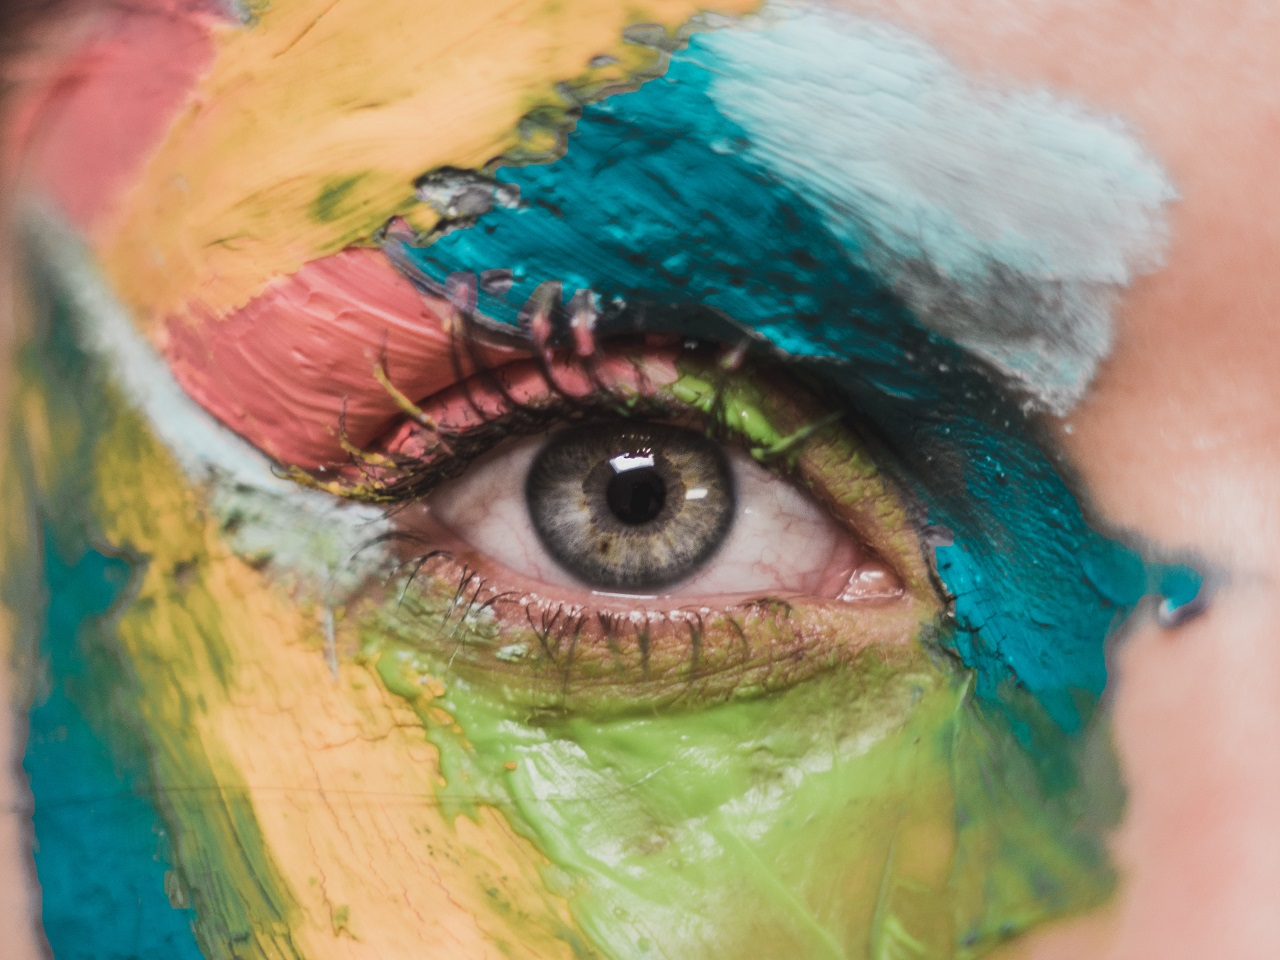 Close up of a human eye with multicoloured paint around their eye. Image by Daniel Apodaca on Unsplash